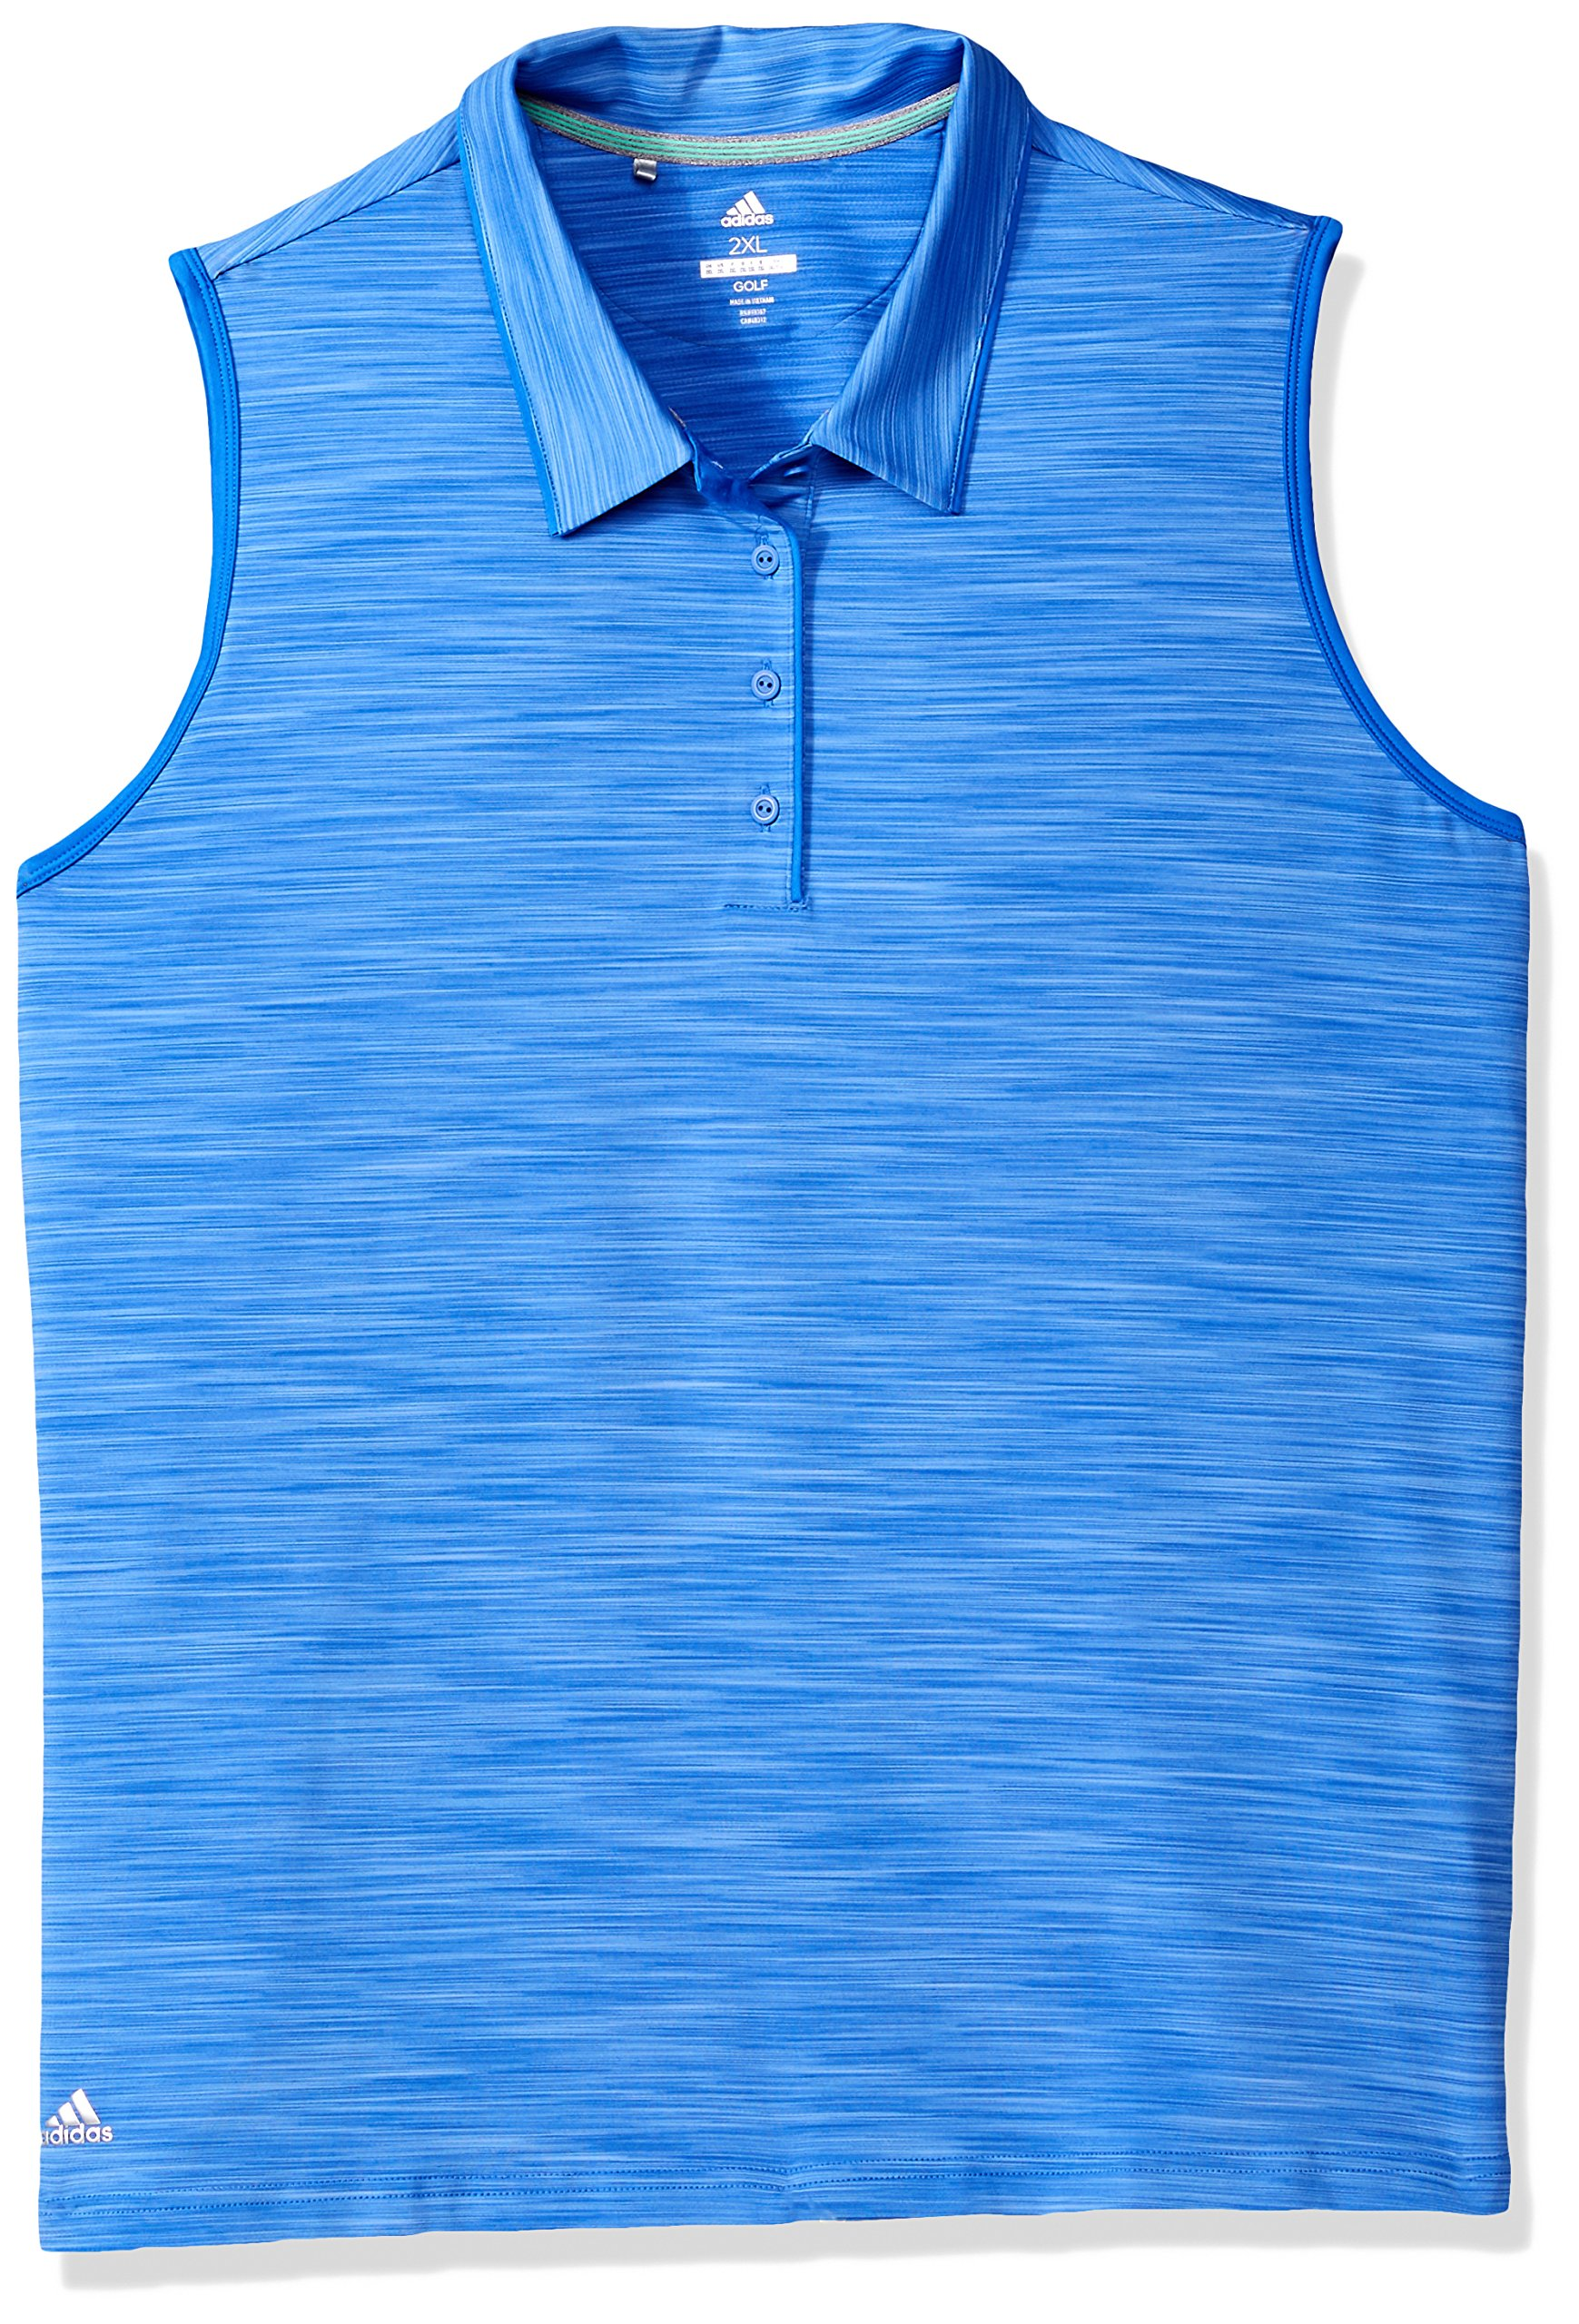 adidas Golf Women's Ultimate 365 Sleeveless Polo, Hi-Res Blue, X-Small